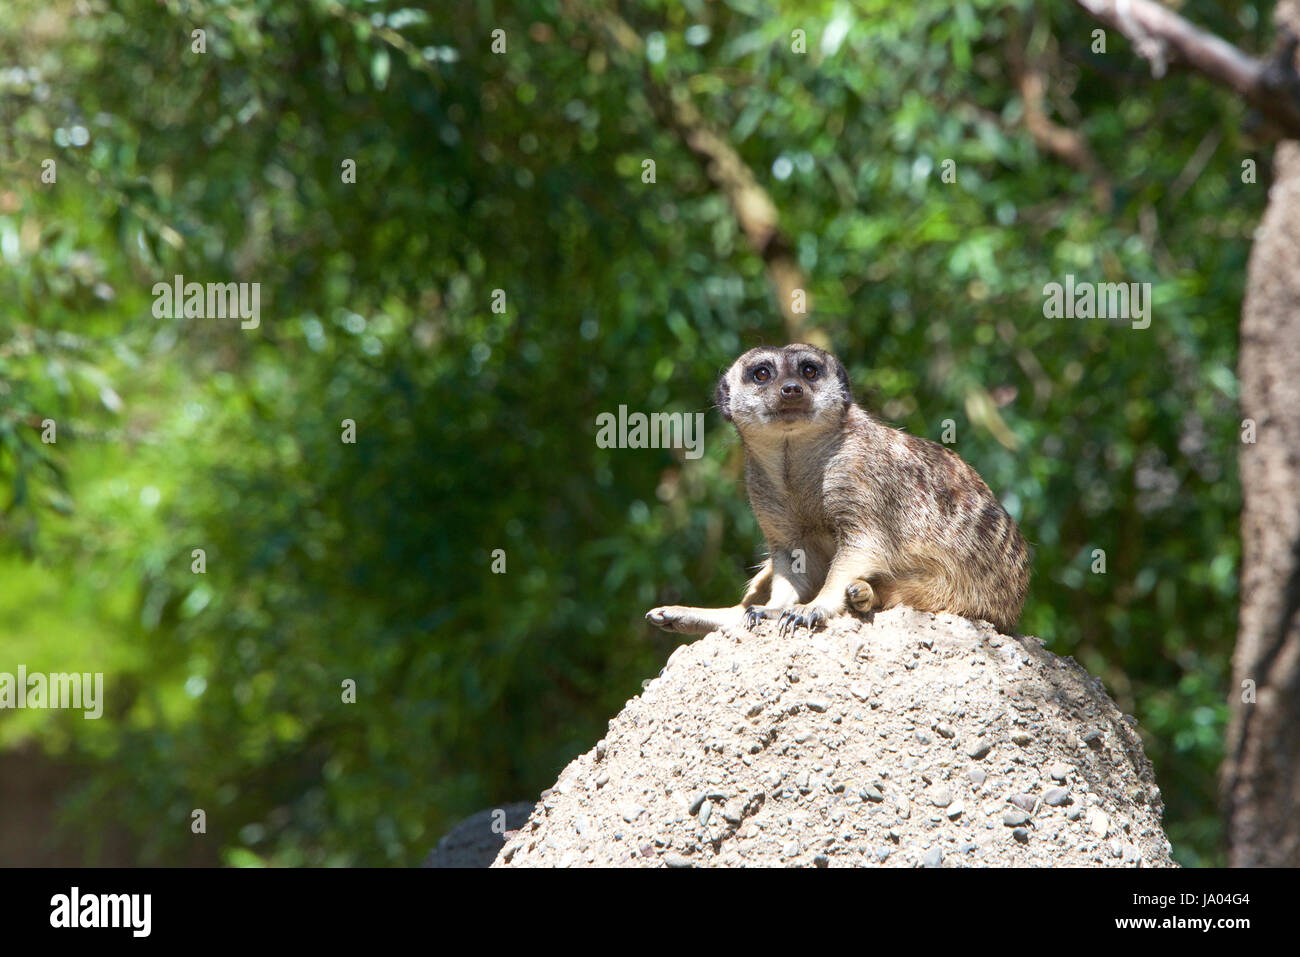 One Meerkat or suricate (Suricata suricatta), sitting on a rocky hill top looking out for danger. Looking towards - Stock Image